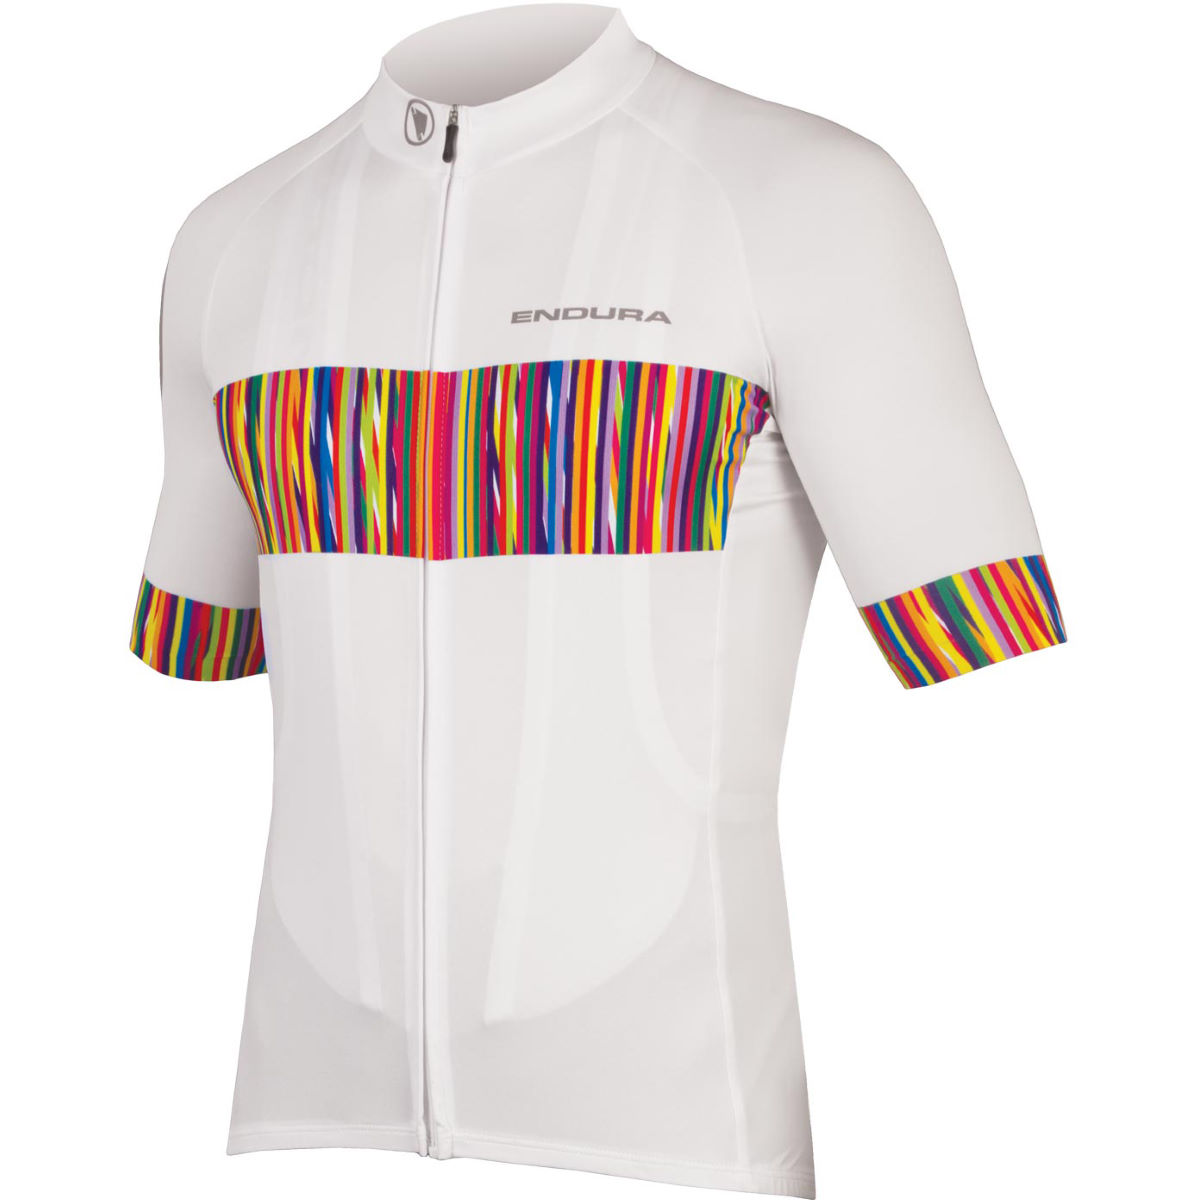 picture Endura Graphics S S Jersey Short Sleeve Cycling Jerseys 74a88fb87